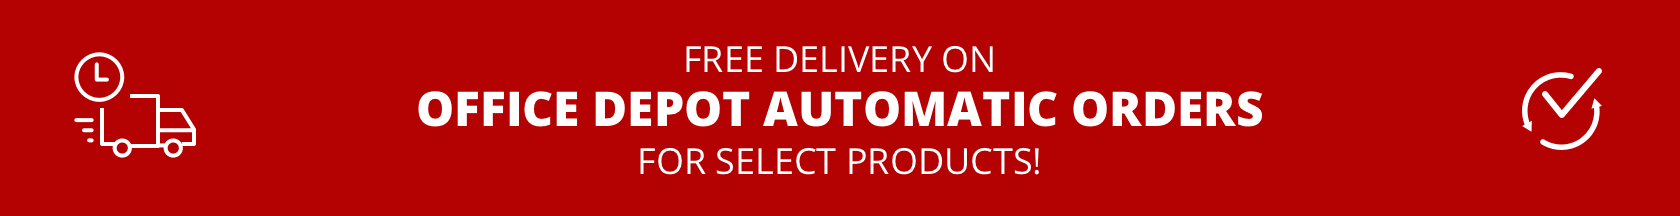 Free Delivery on Office Depot Automatic Orders for select products